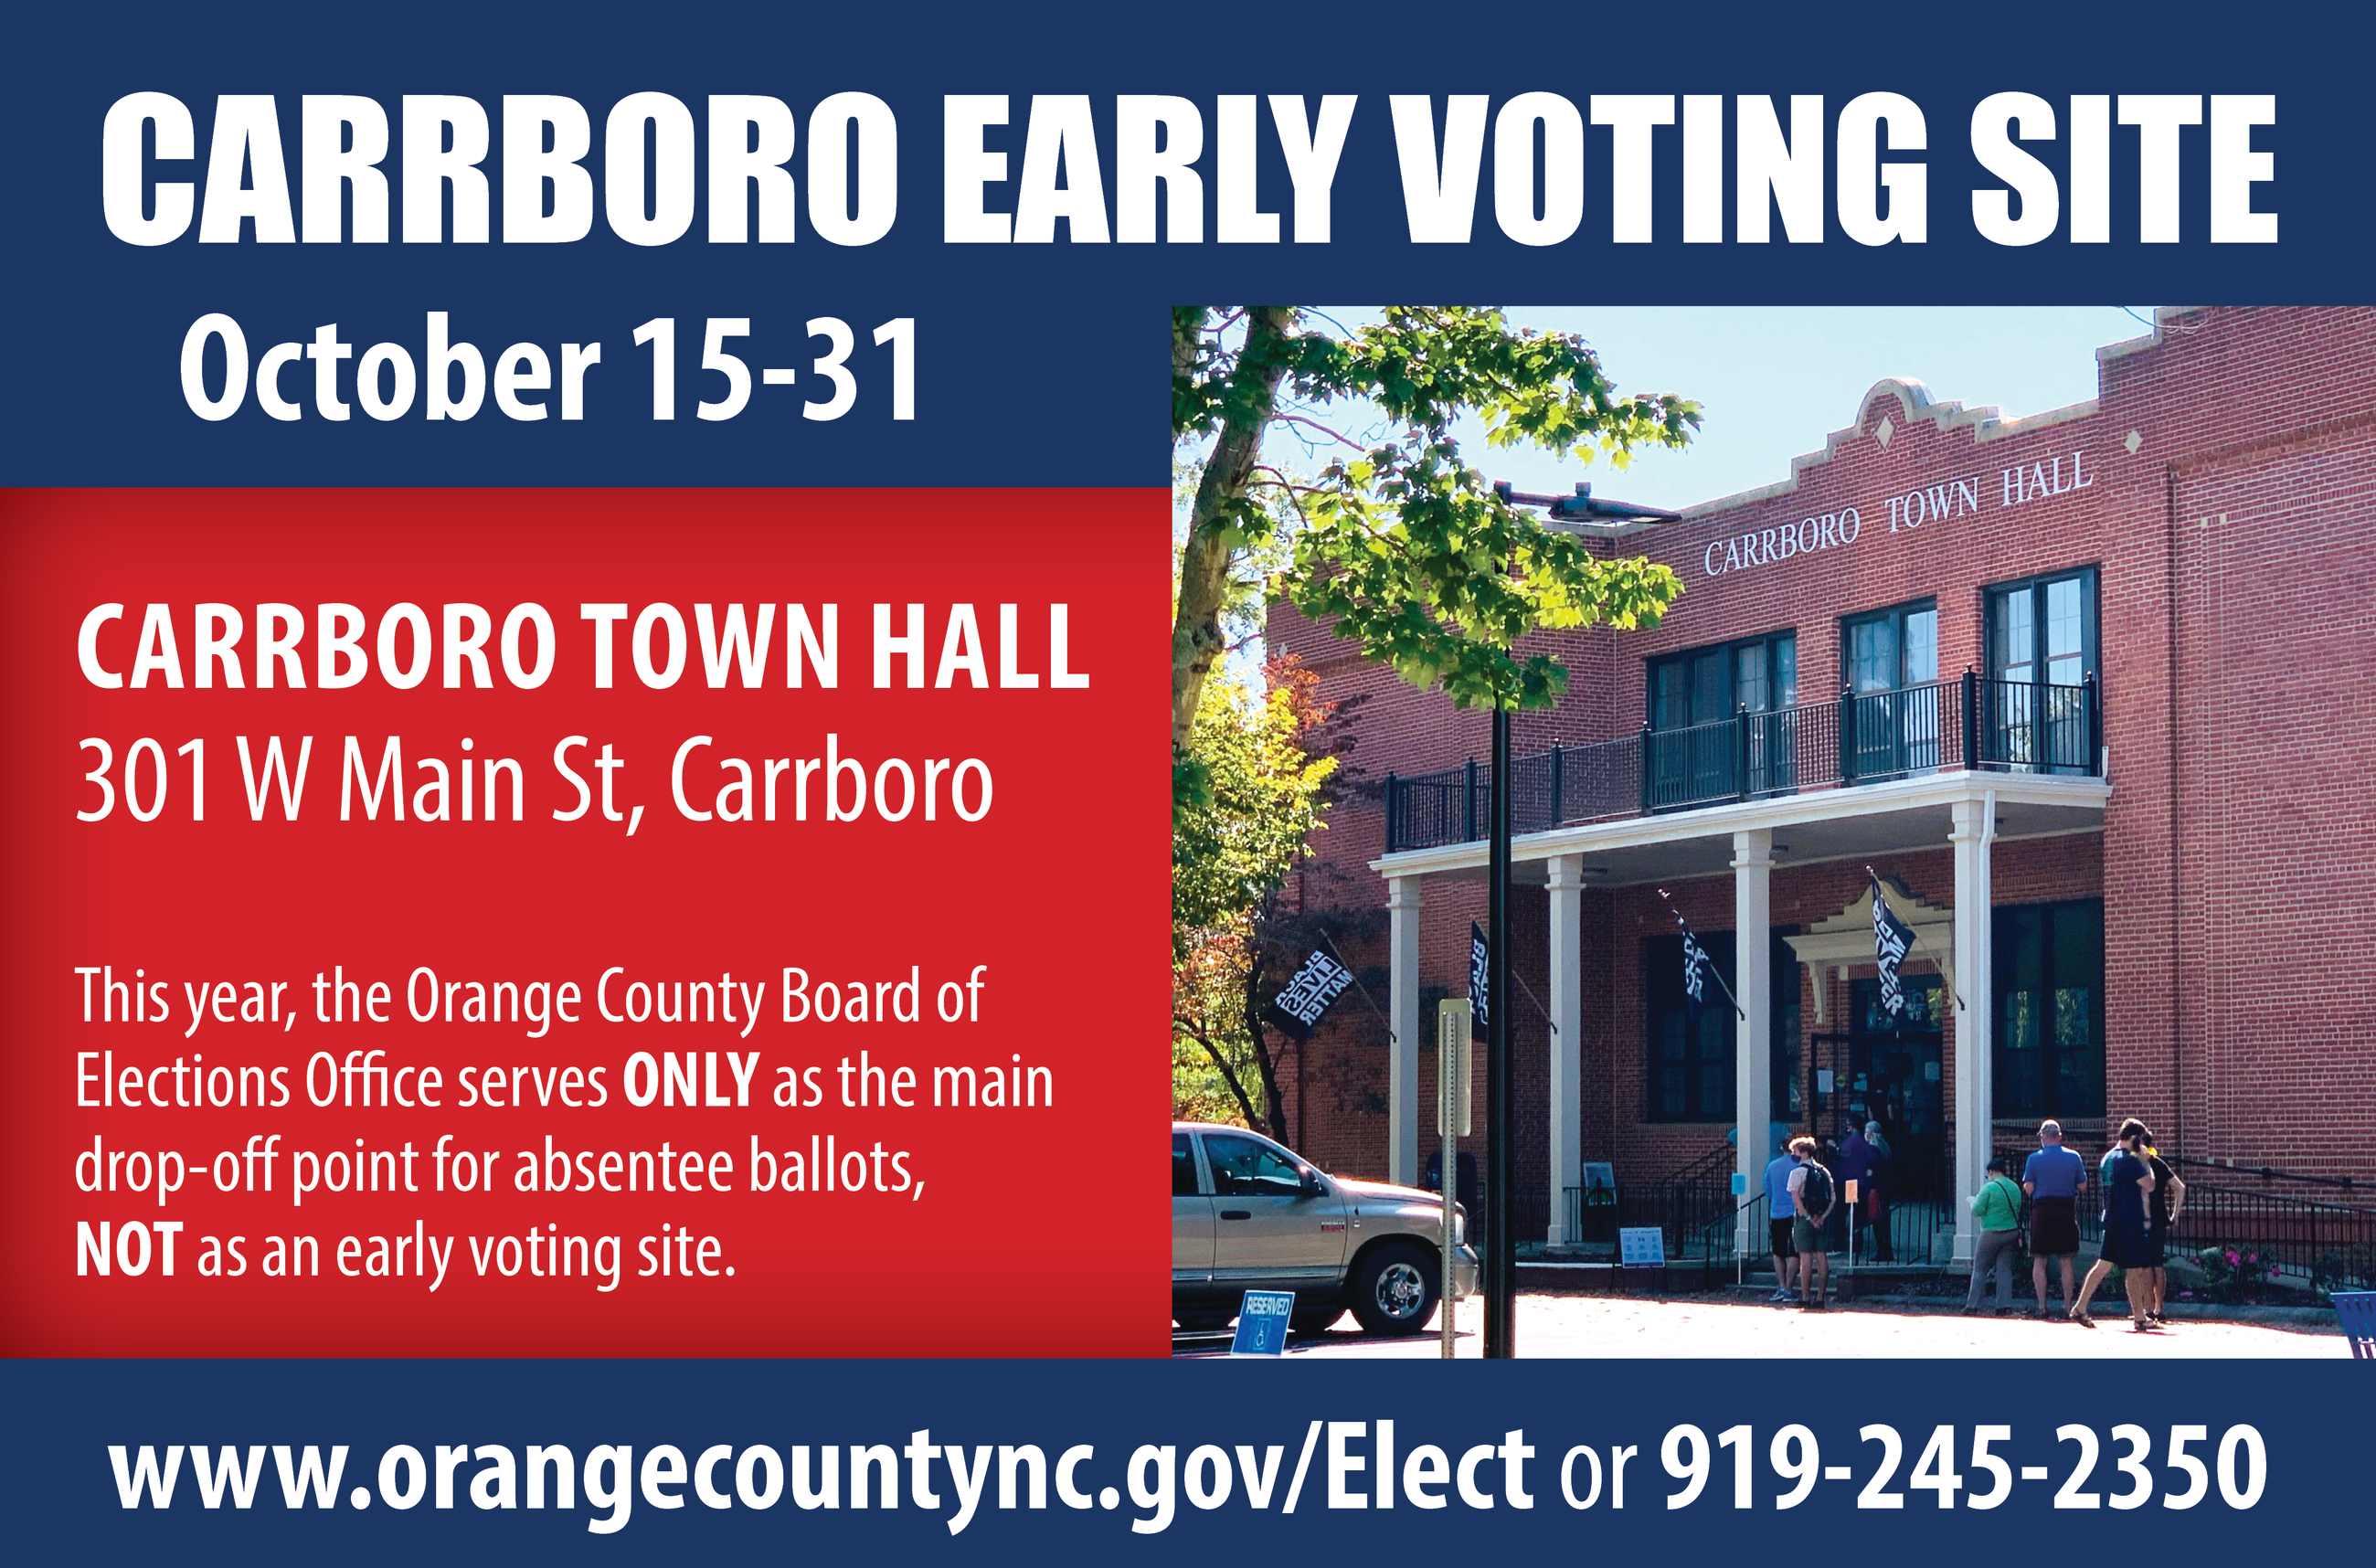 carrboro early voting